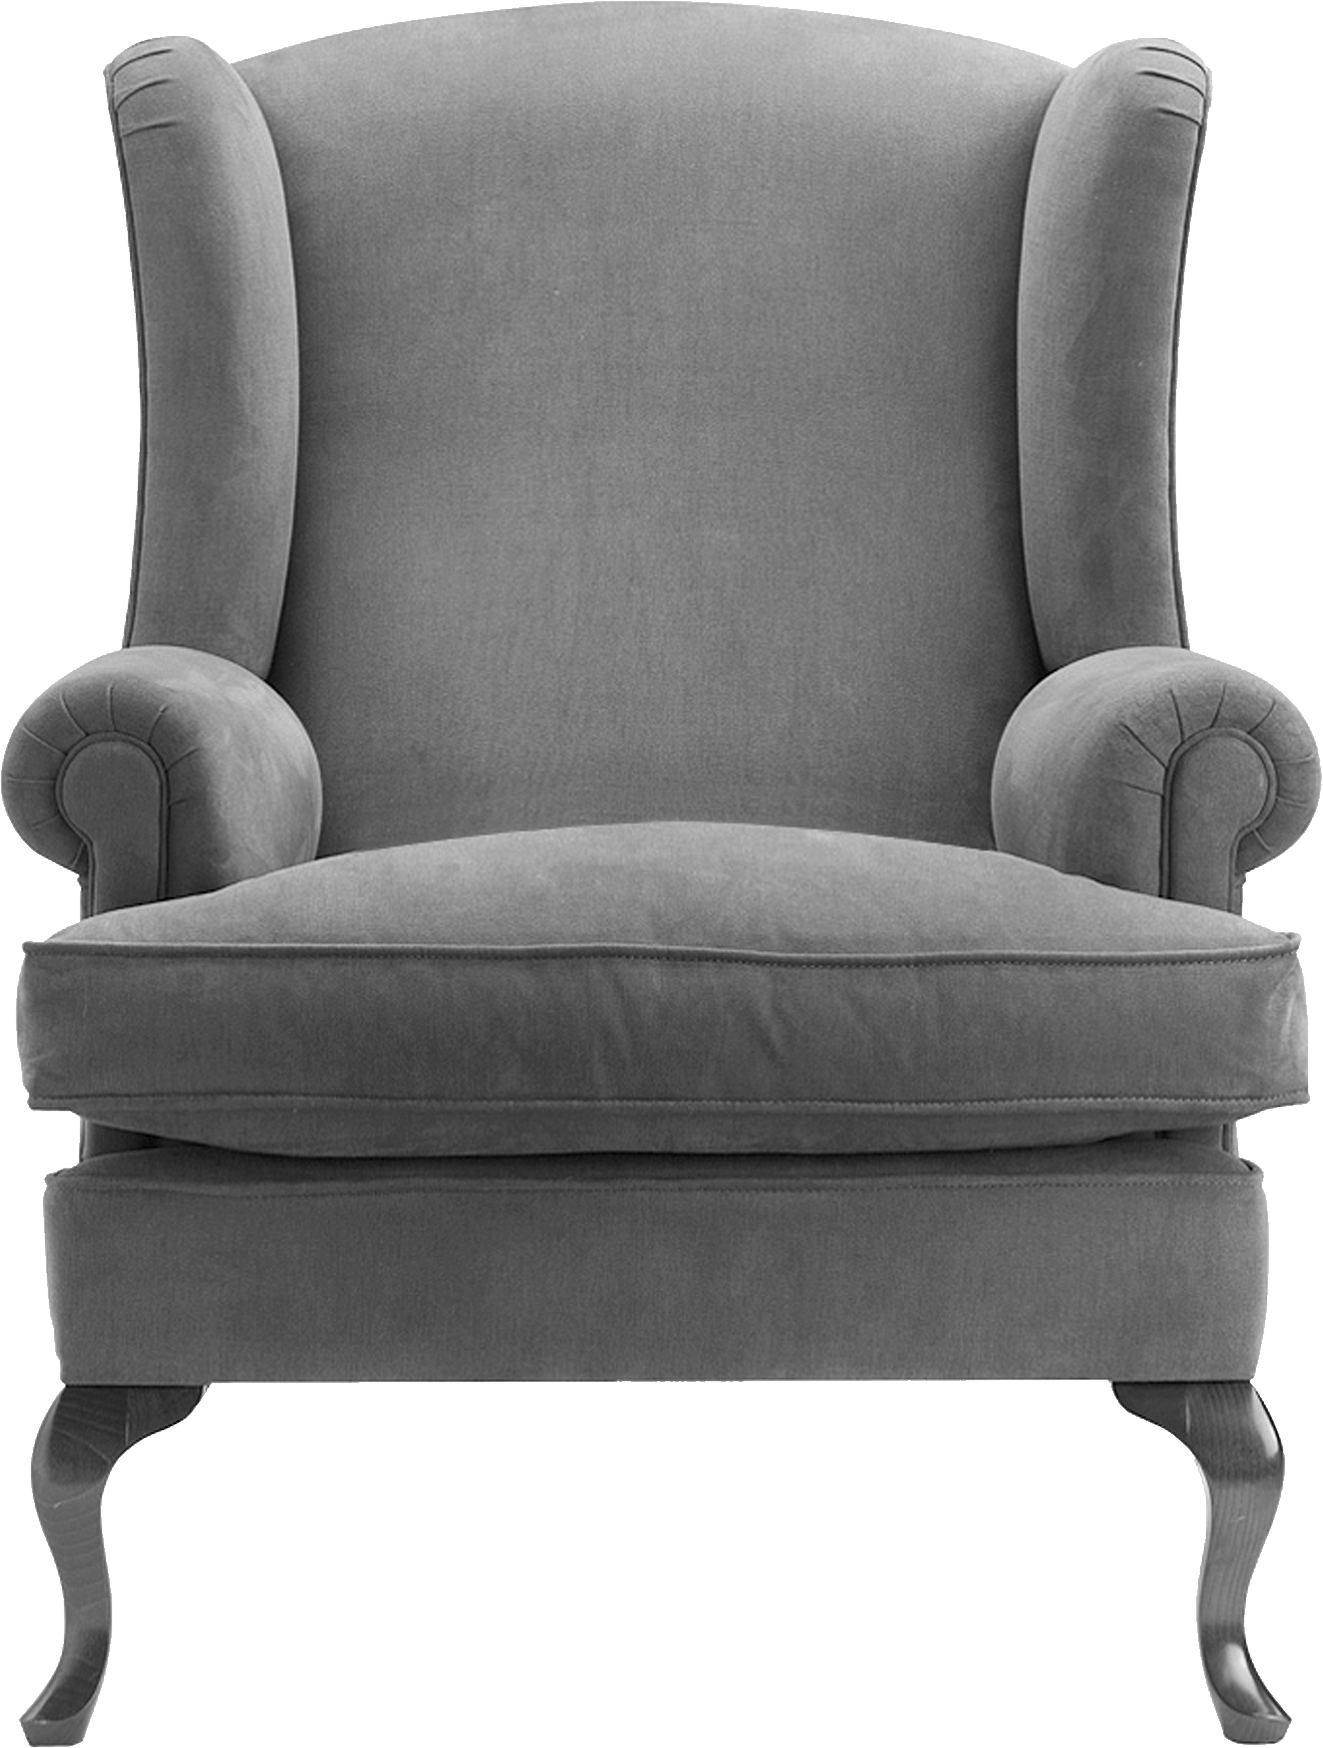 furniture · armchairs - Armchair HD PNG